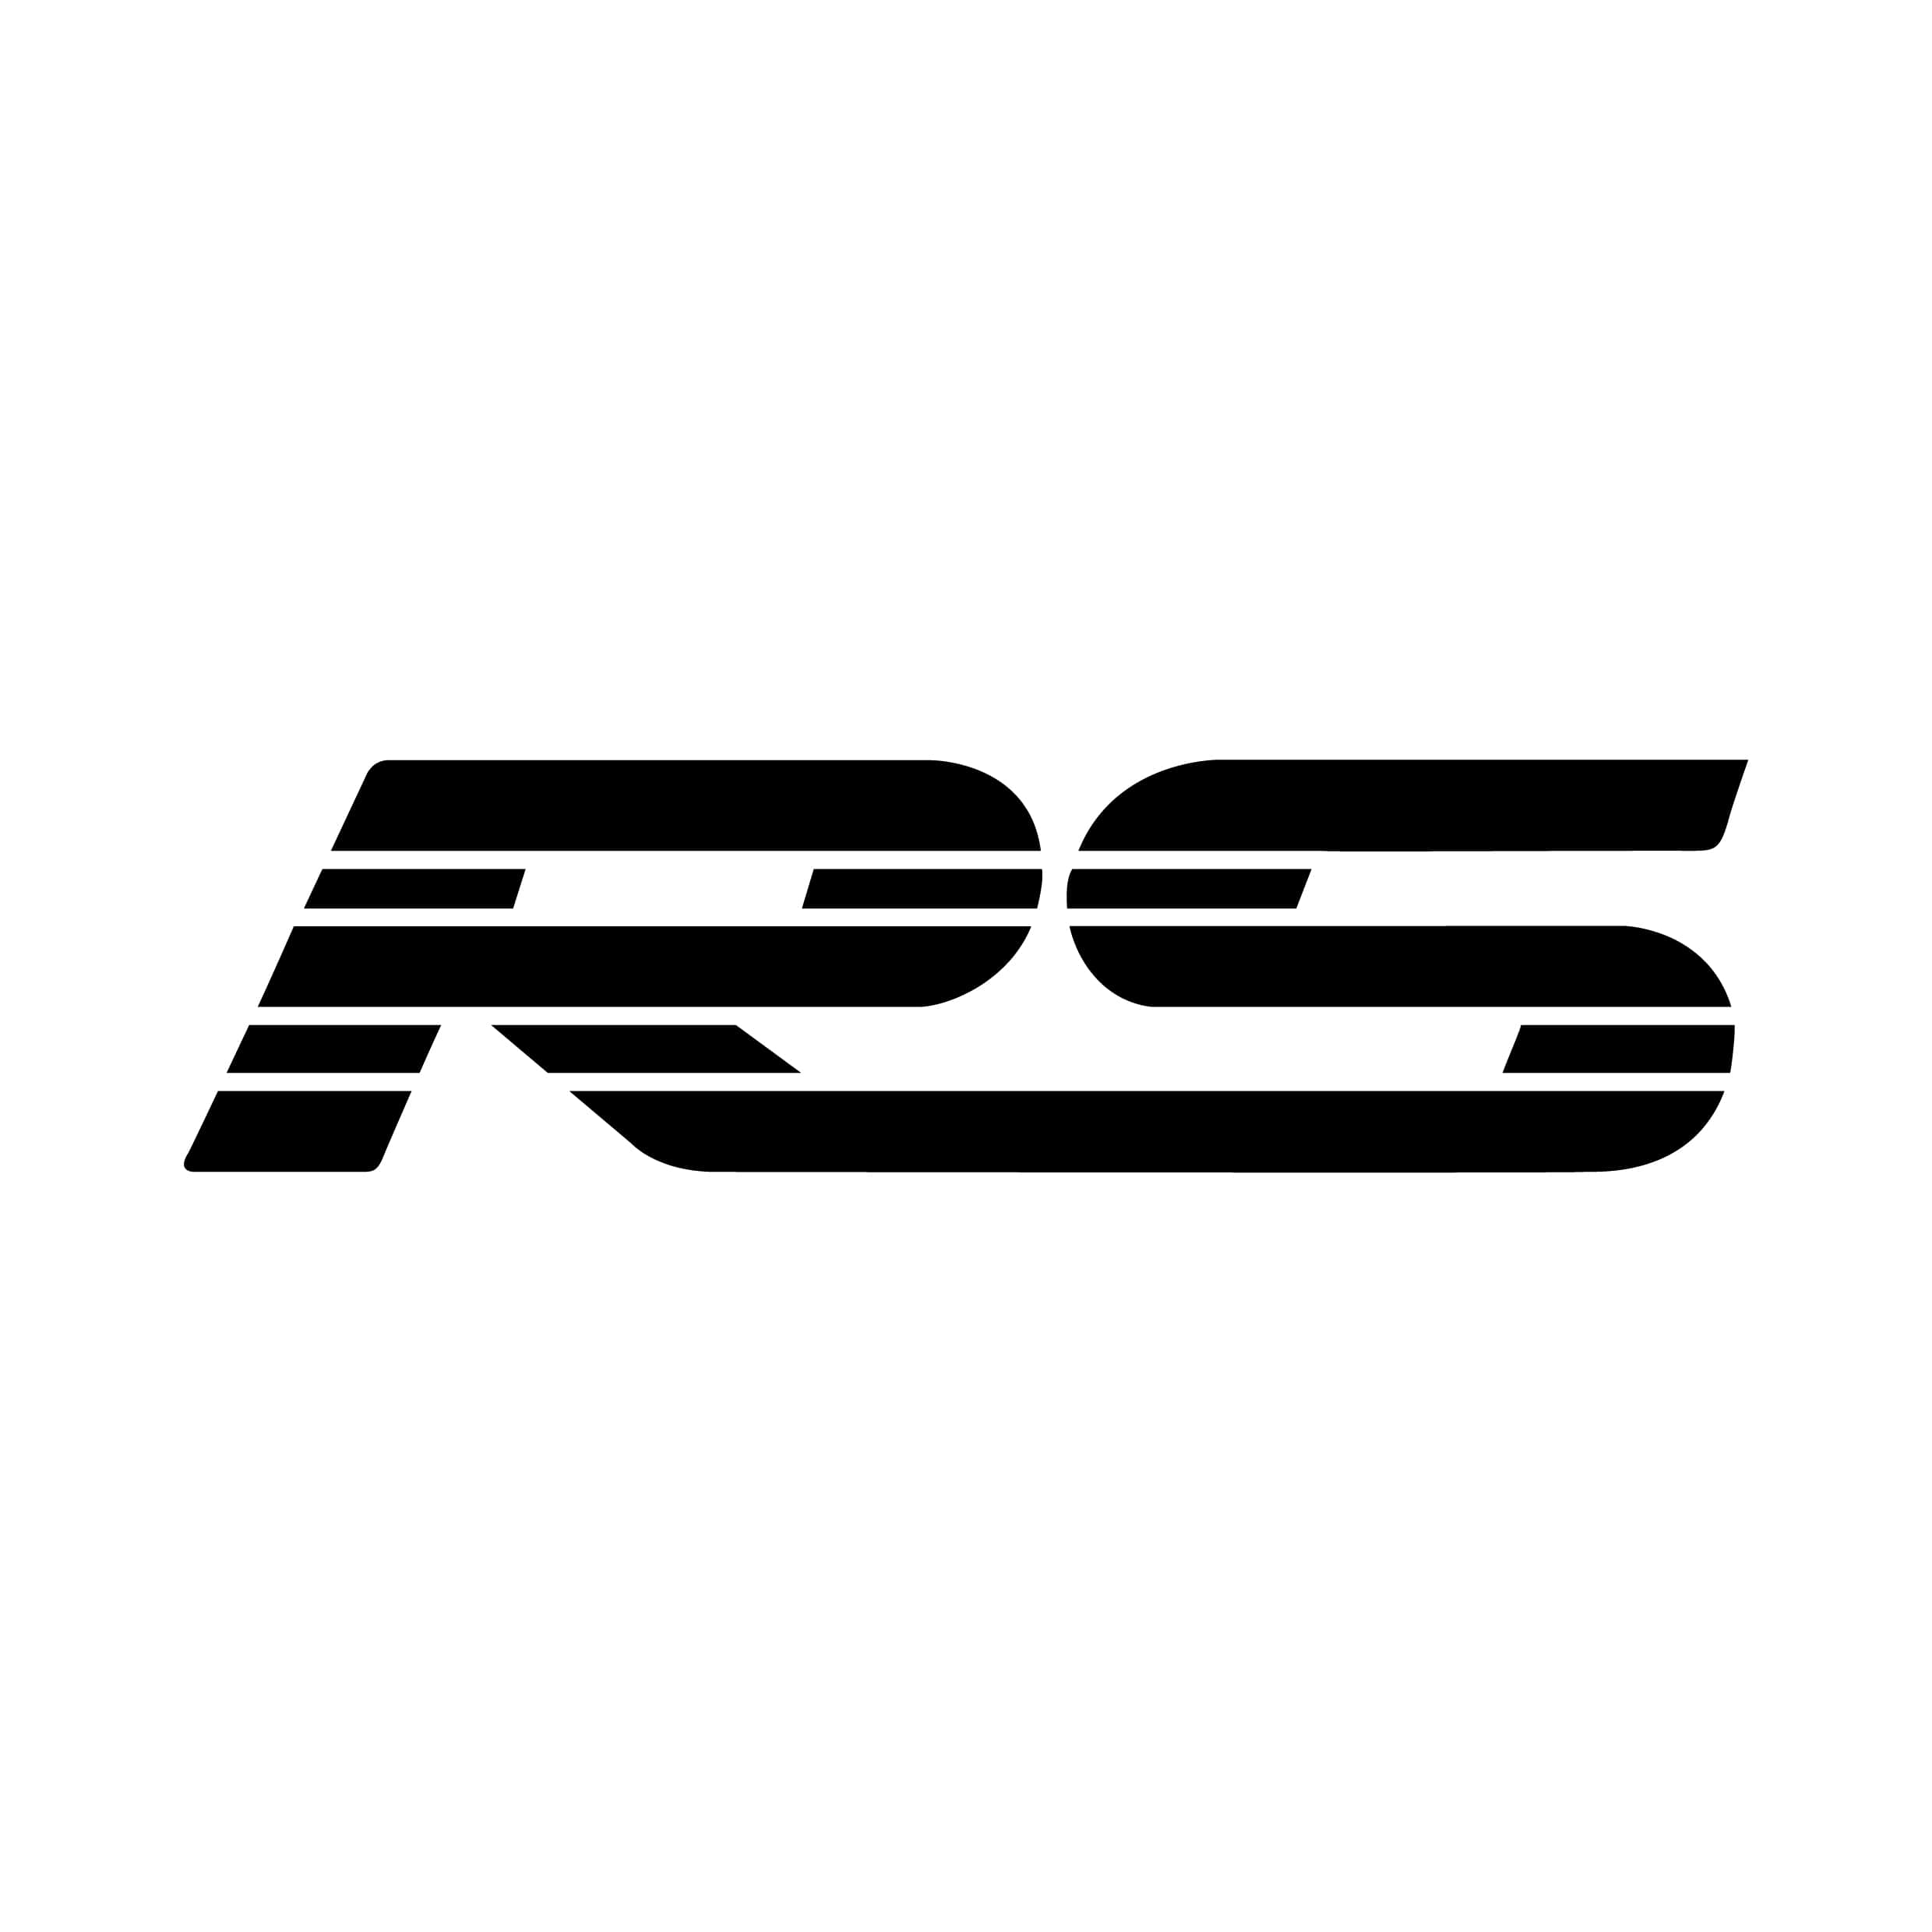 stickers-chevrolet-rs-ref24-autocollant-voiture-sticker-auto-autocollants-decals-sponsors-racing-tuning